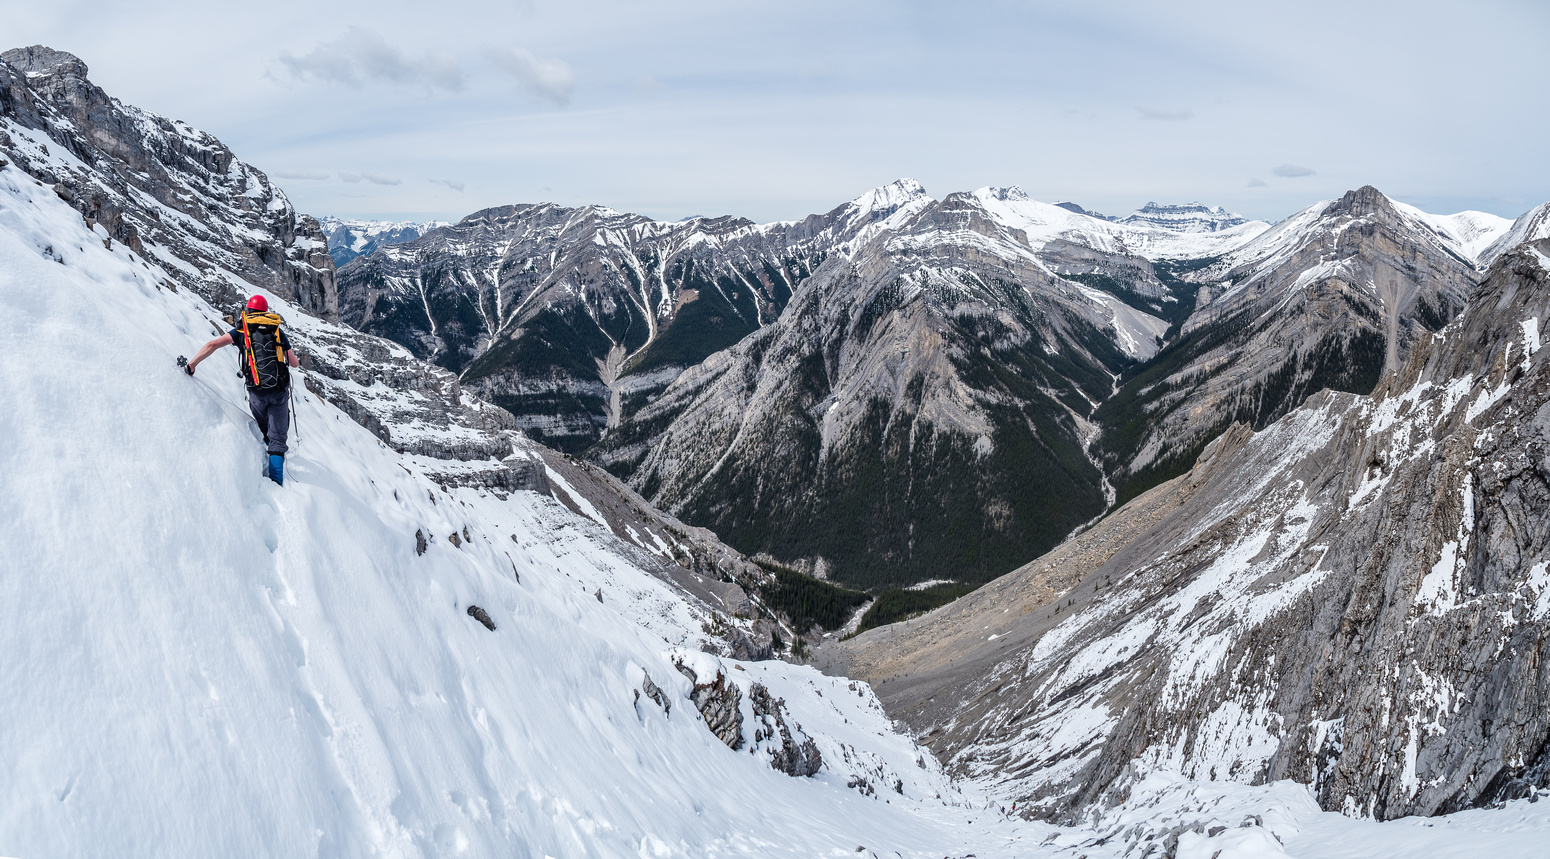 One last steep traverse to avoid some slabby terrain and get onto easier slopes to the summit ridge.